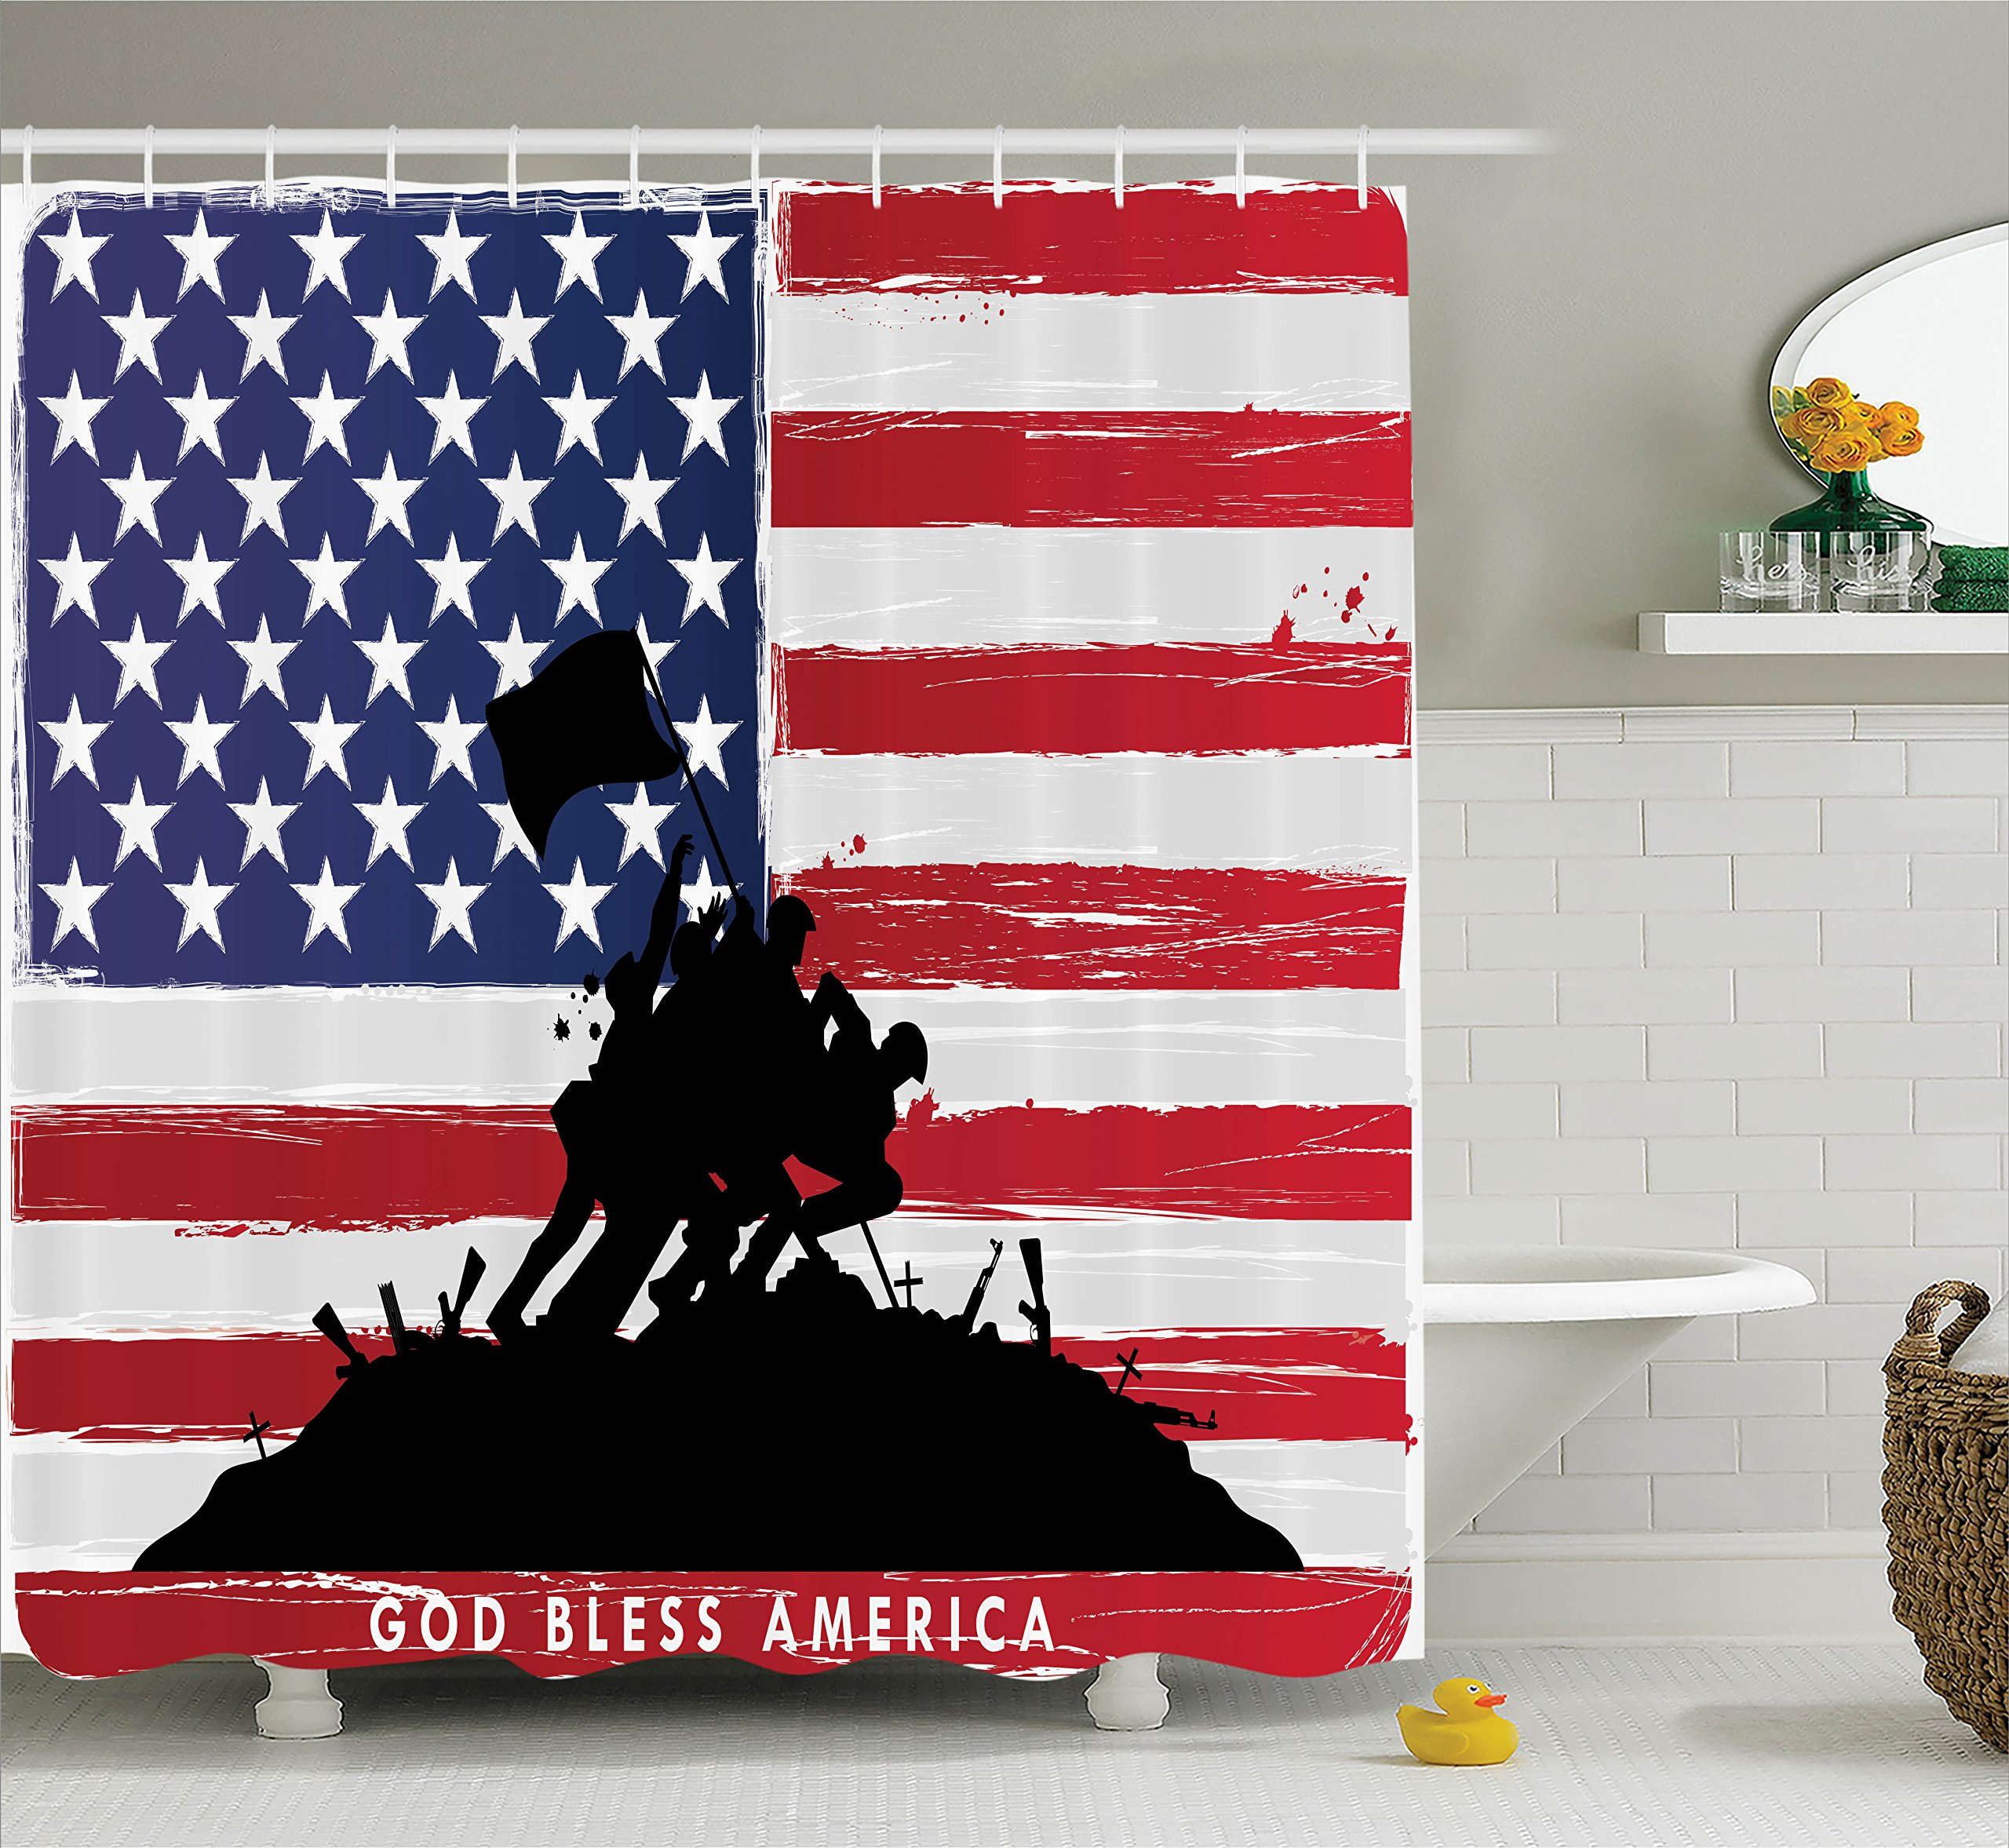 Ambesonne American Shower Curtain, Bless America Silhouettes of American USA Flag Background Valor Patriot Theme, Fabric Bathroom Decor Set with Hooks, 70 Inches, Black and Red